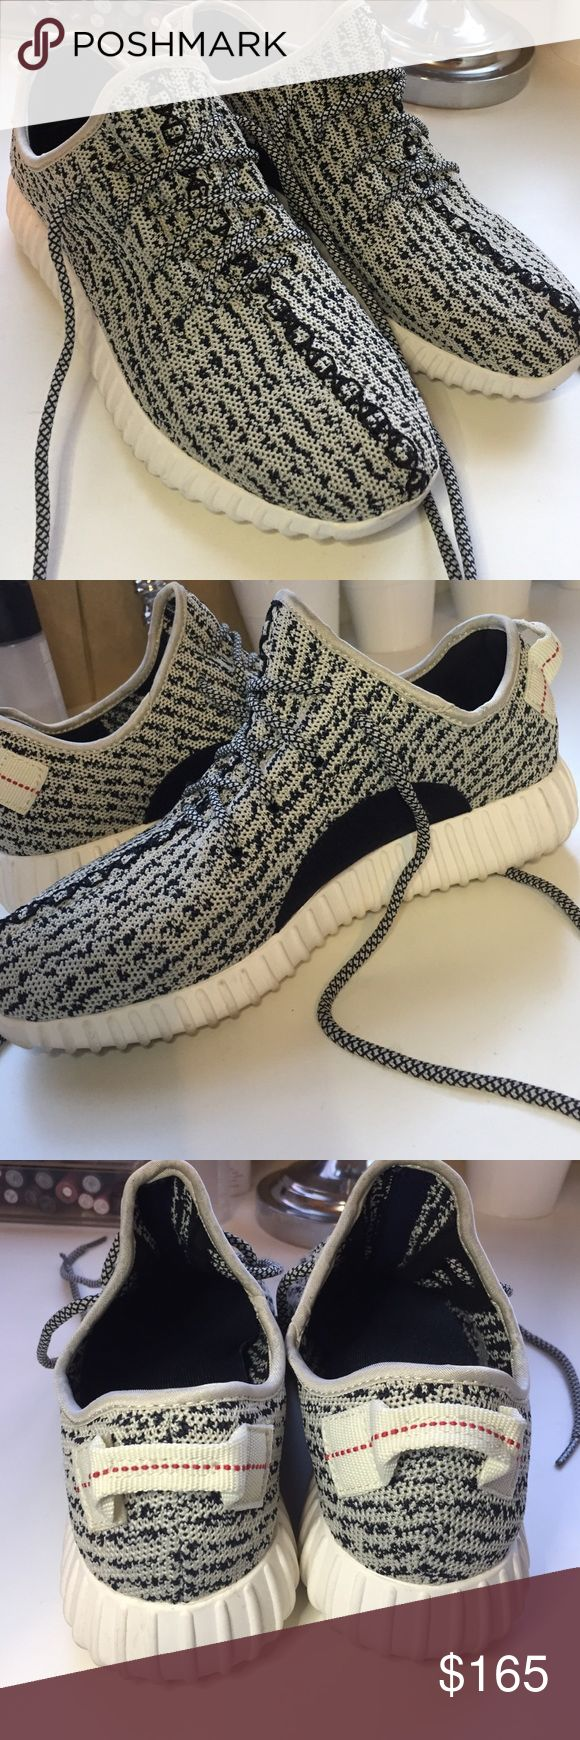 fd786db02 yeezy boost 350 size 10 turtle dove custom nmd shoes adidas